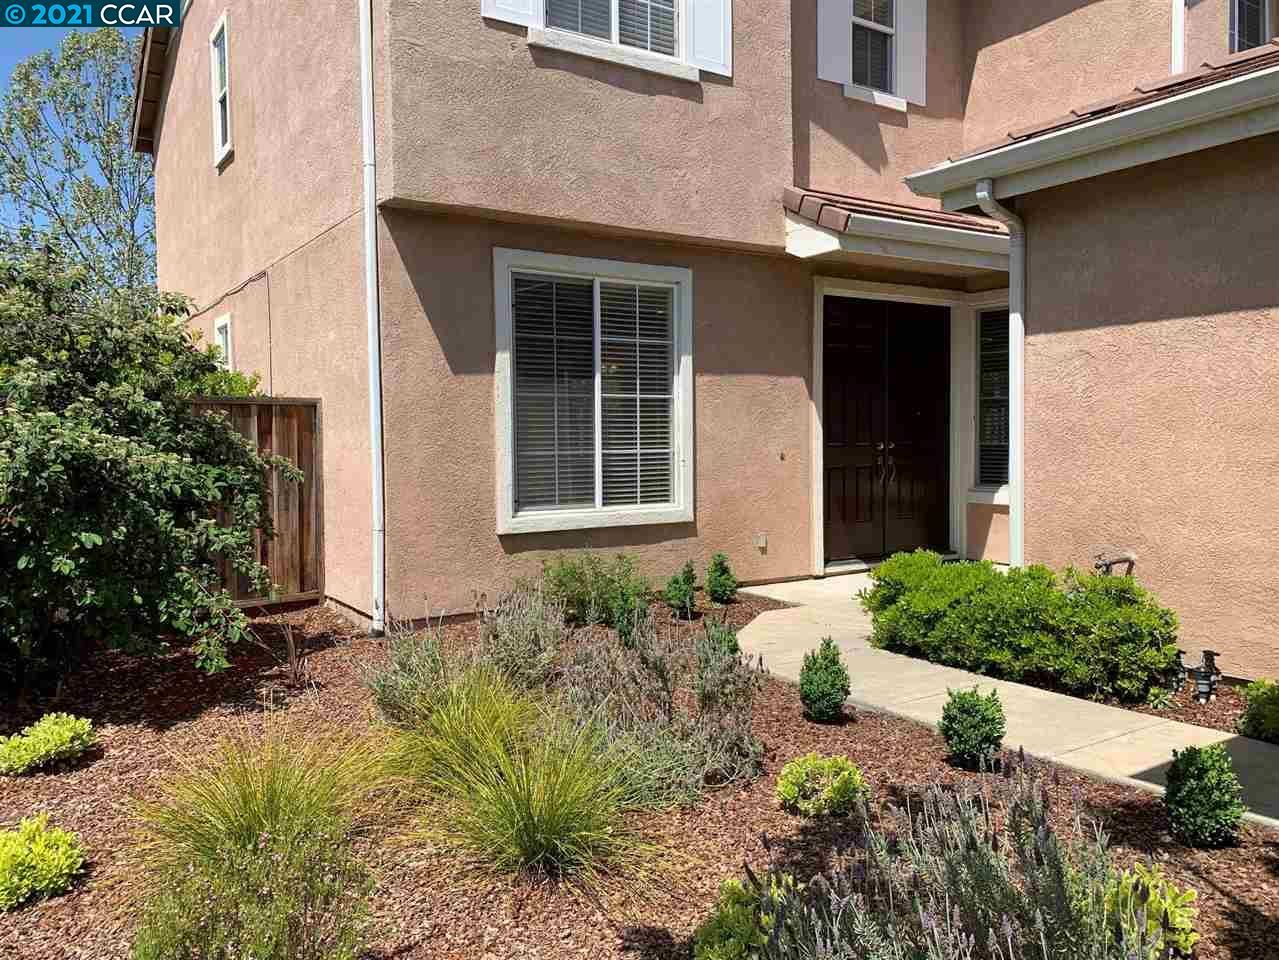 Photo of 110 Gerbera St, DANVILLE, CA 94506 (MLS # 40949153)